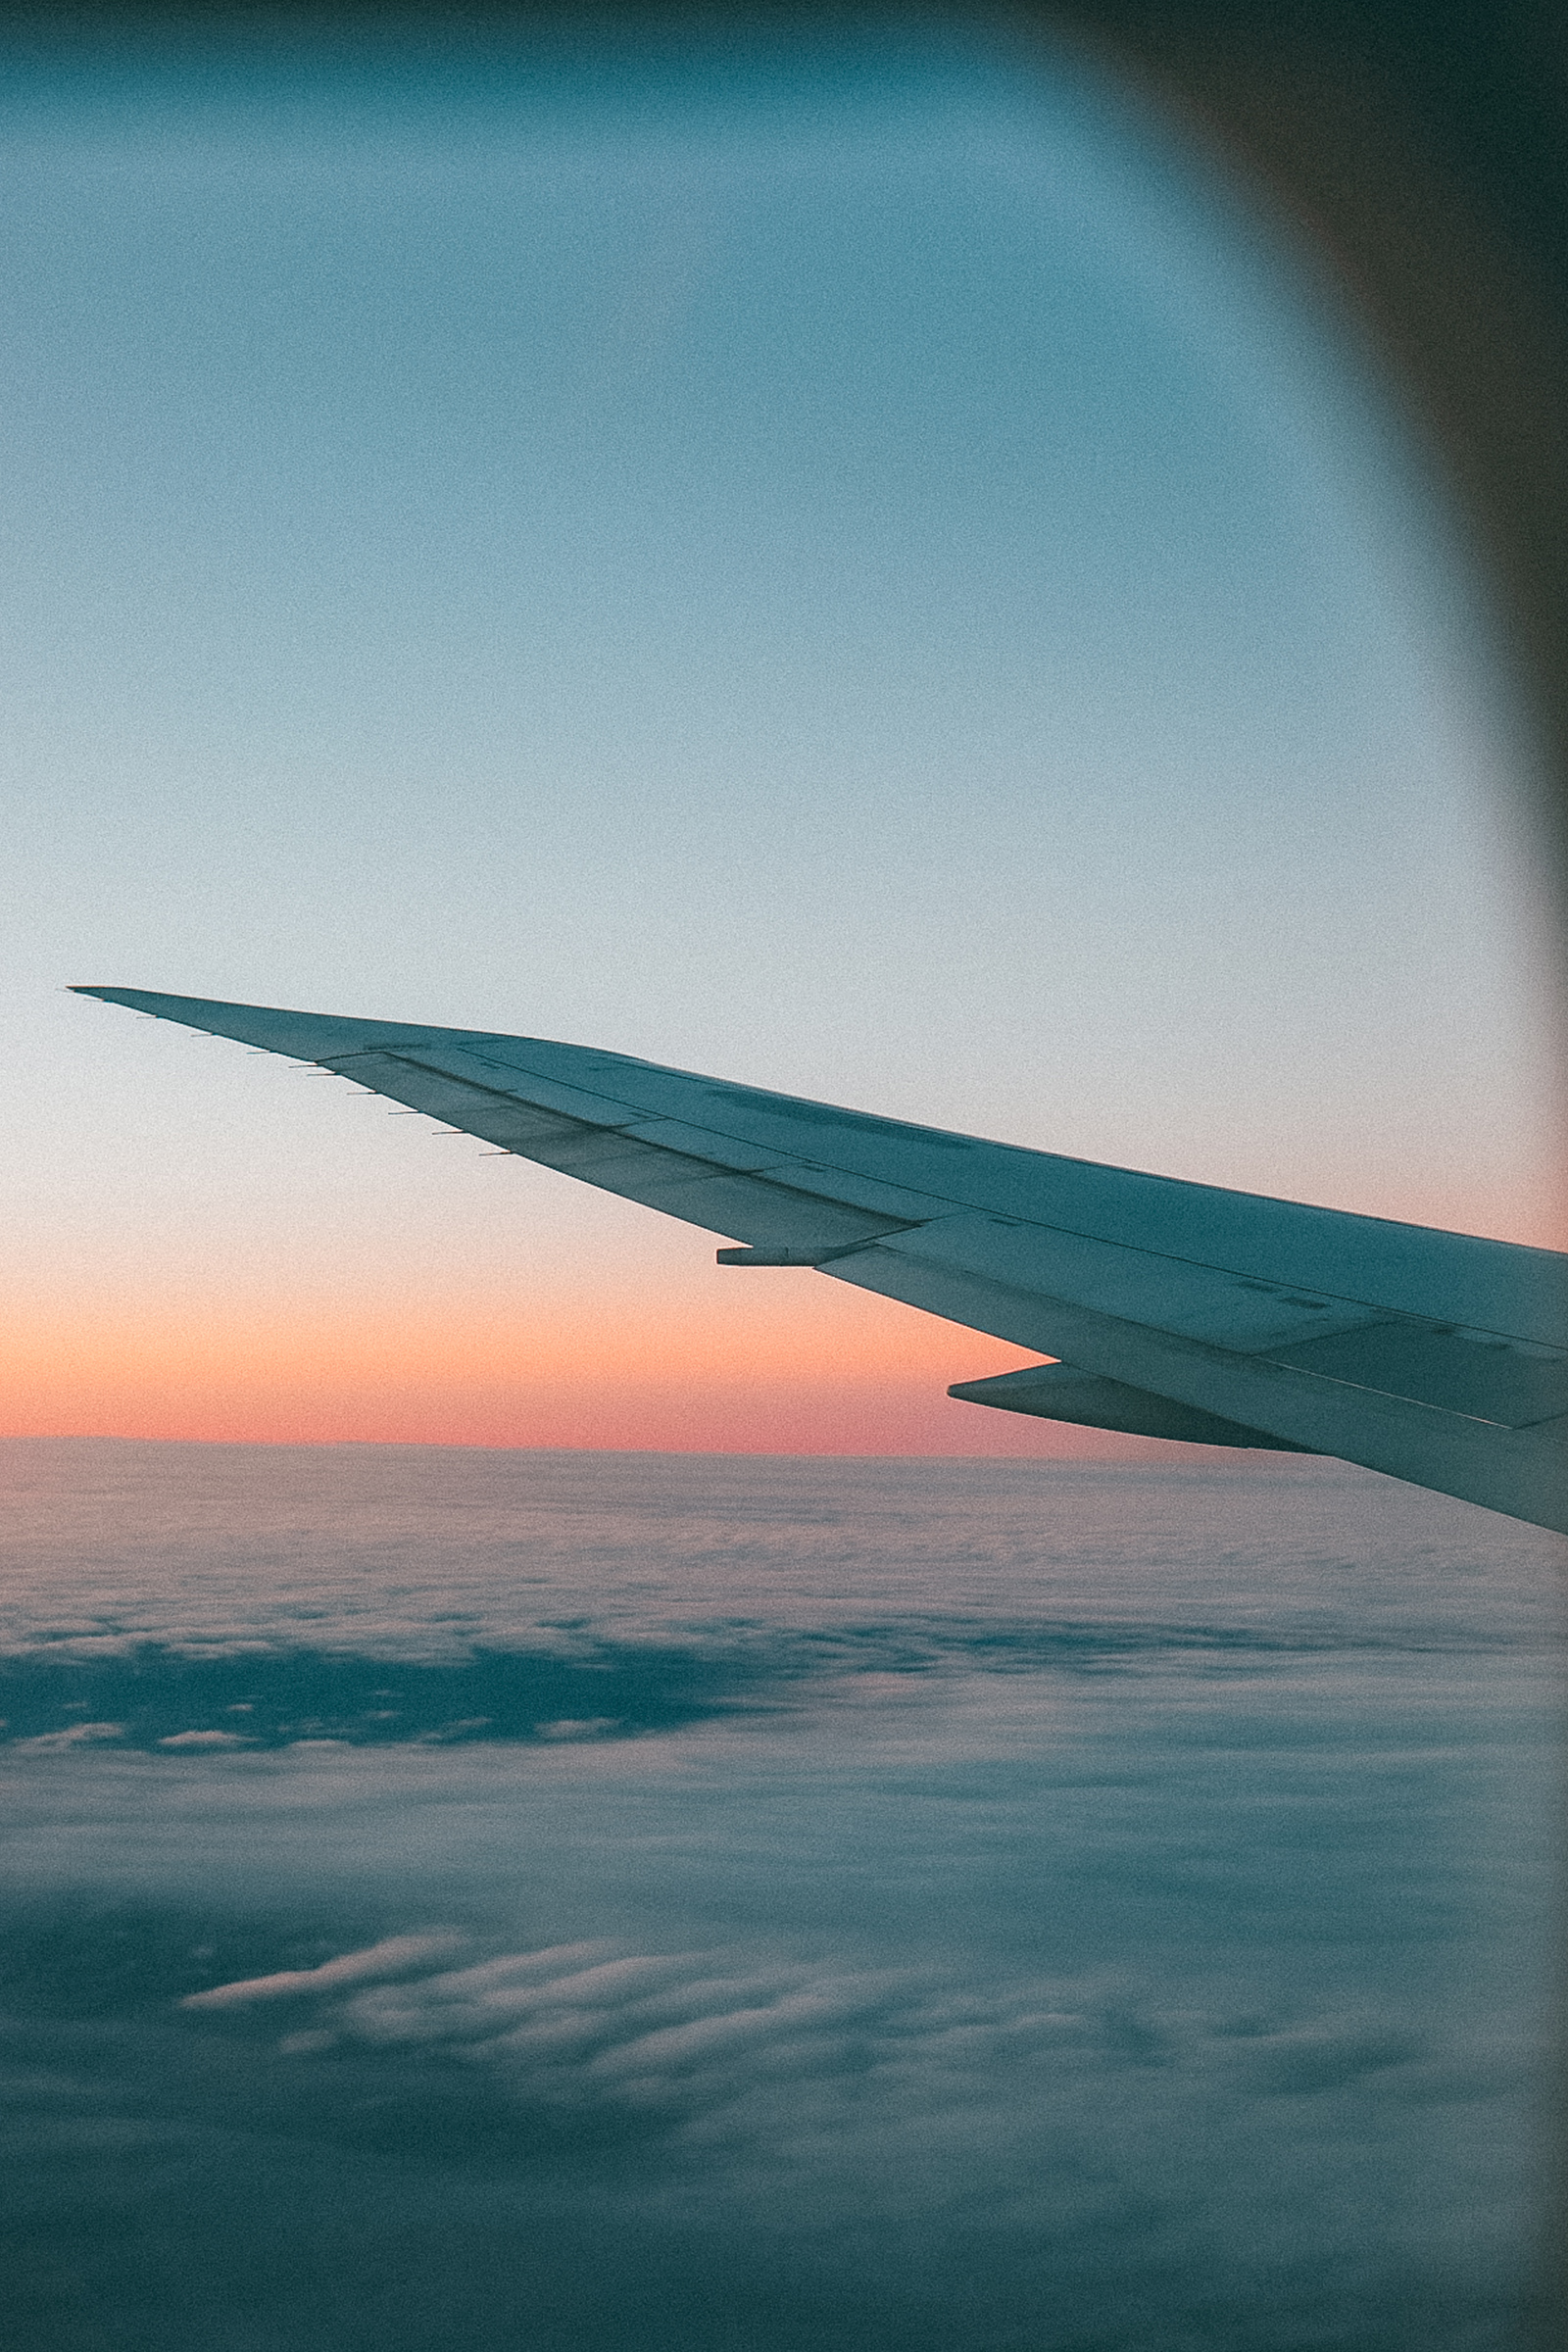 Travel Photography / Airplane Sunset / Wanderlust / Kelly Fiance Creative